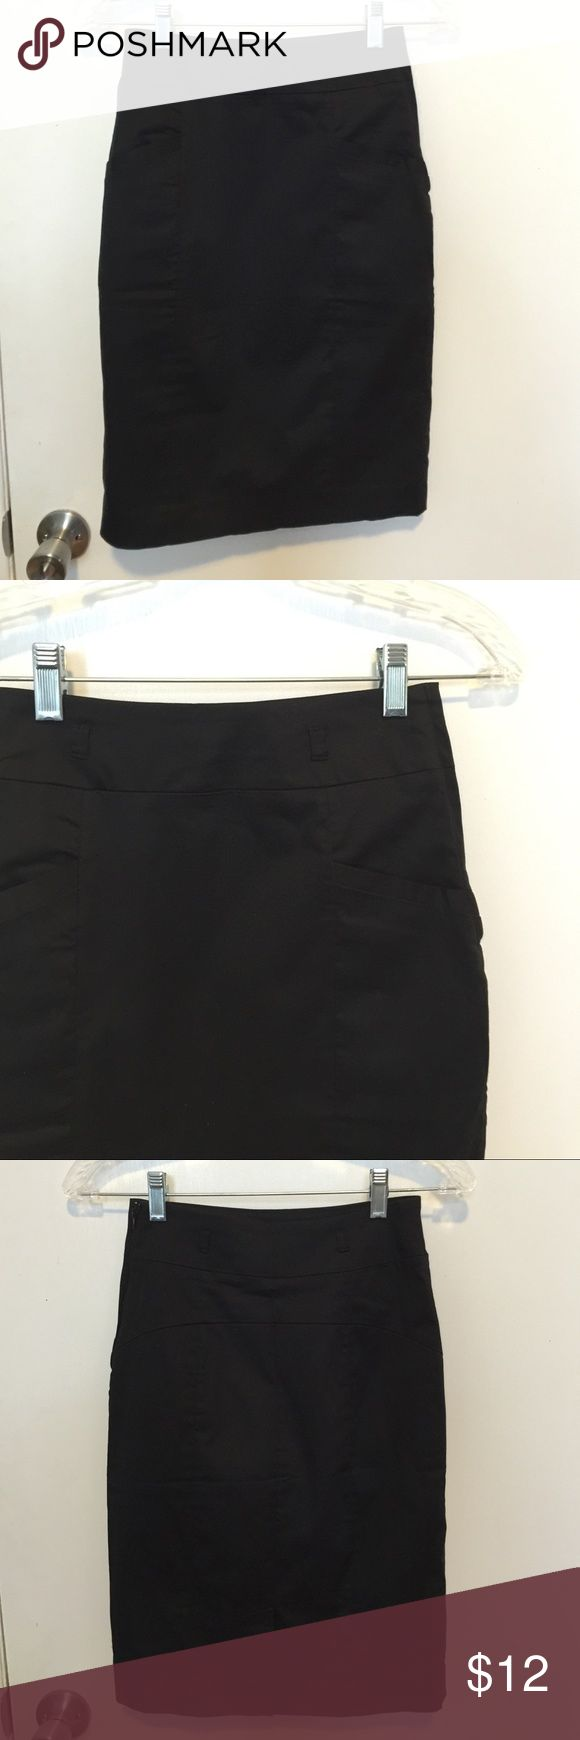 H&M black pencil skirt (2) ✨ H&M black pencil skirt. Great for the office! (2) ✨ H&M Skirts Pencil